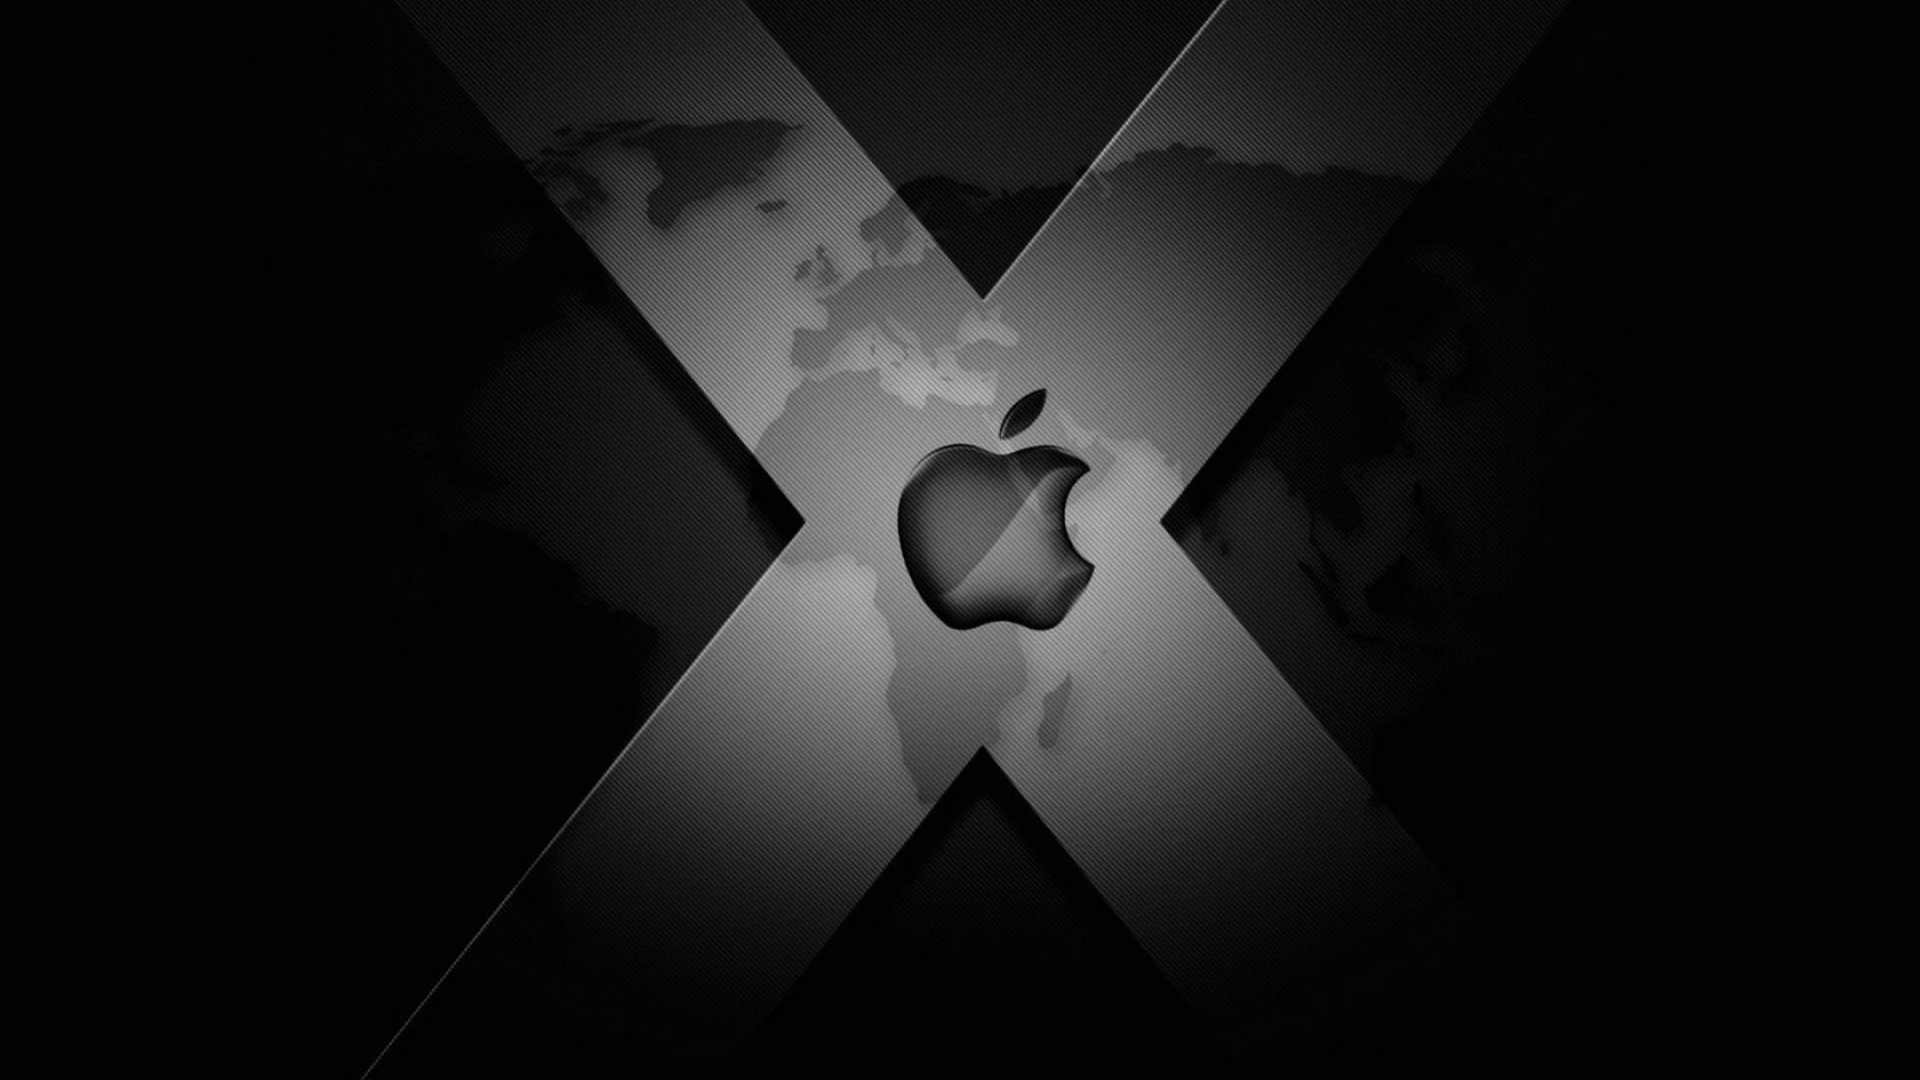 Cool HD Wallpapers for Mac (61+ pictures)